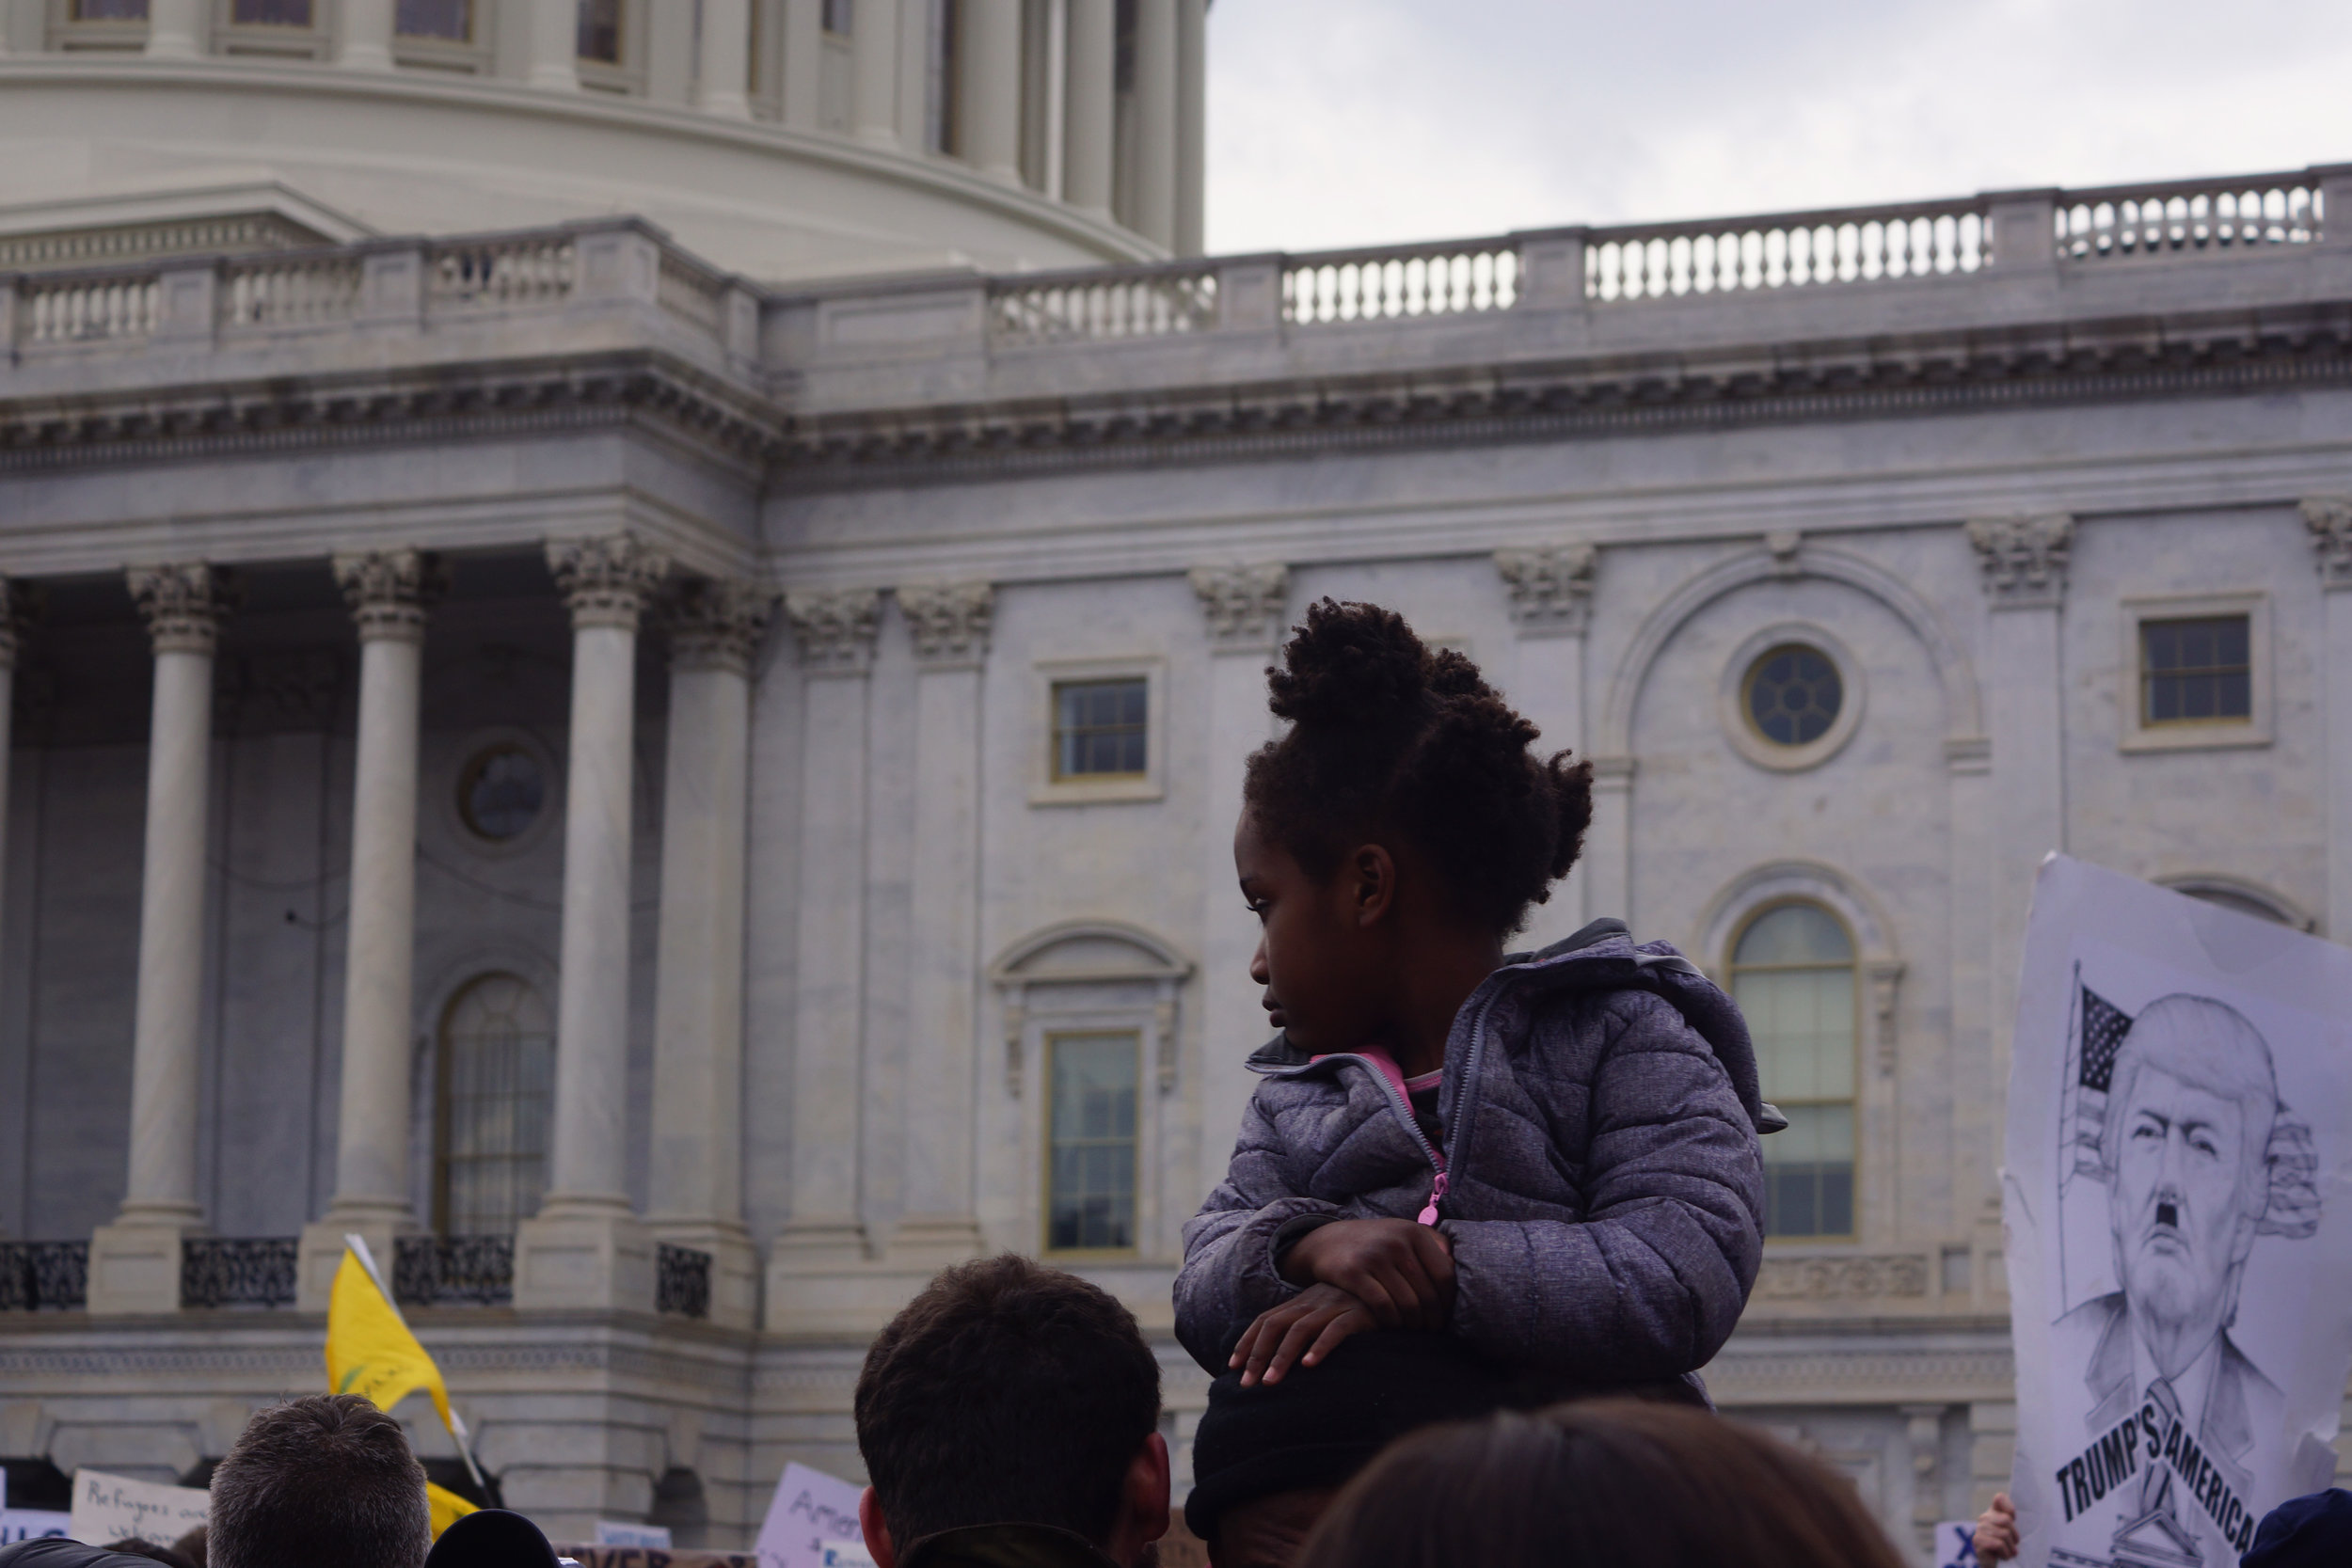 [Image Description: A young black girl sits on an adult's shoulders, resting her hands on their head, looking at the Capitol building pensively. A sign behind her has a drawing of Donald Trump with Hitler's moustache, and reads 'Trump's America' beneath the picture.]